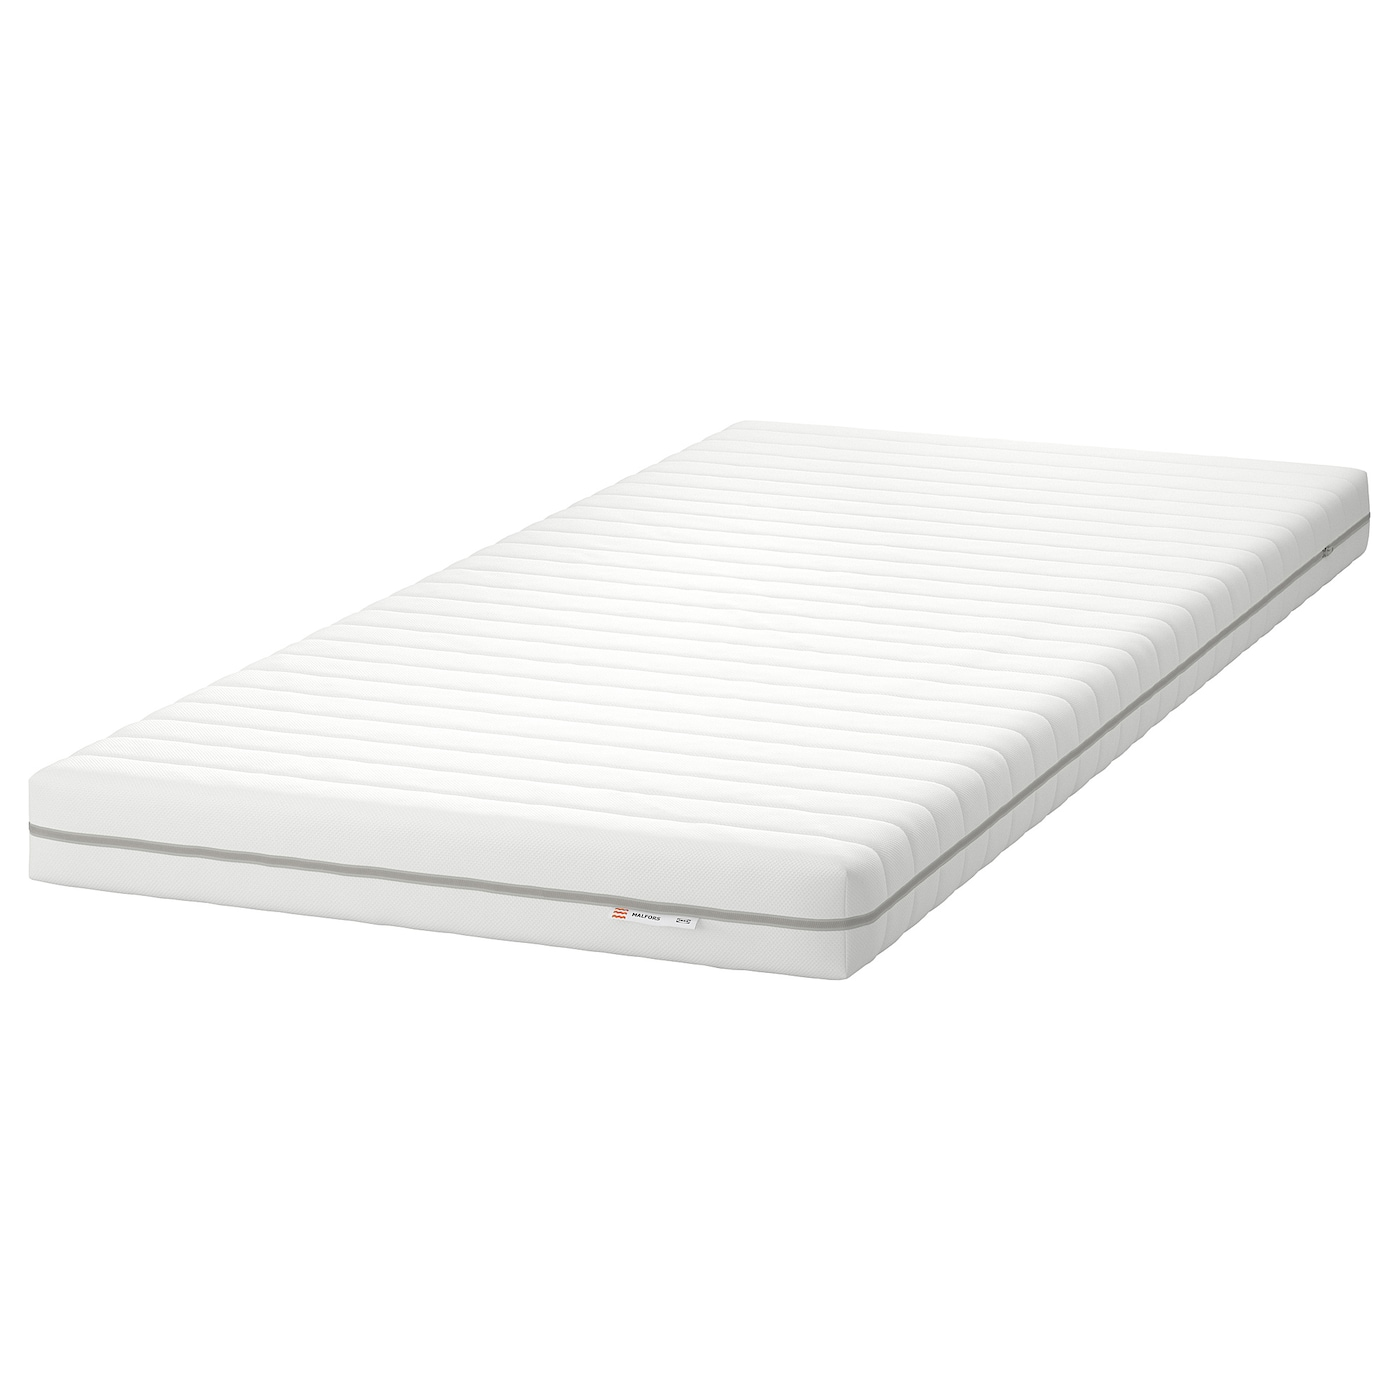 malfors matelas en mousse mi ferme blanc 90 x 200 cm ikea. Black Bedroom Furniture Sets. Home Design Ideas